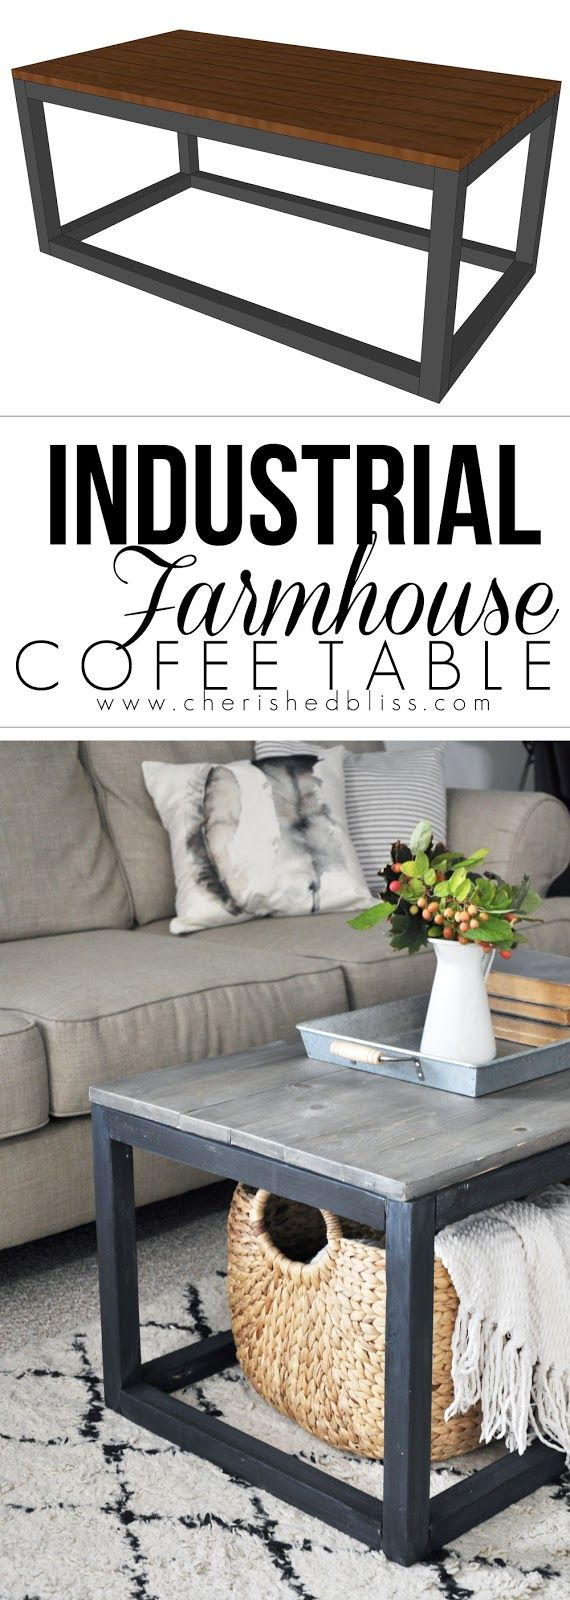 25 best ideas about industrial farmhouse on pinterest for Industrial farmhouse coffee table